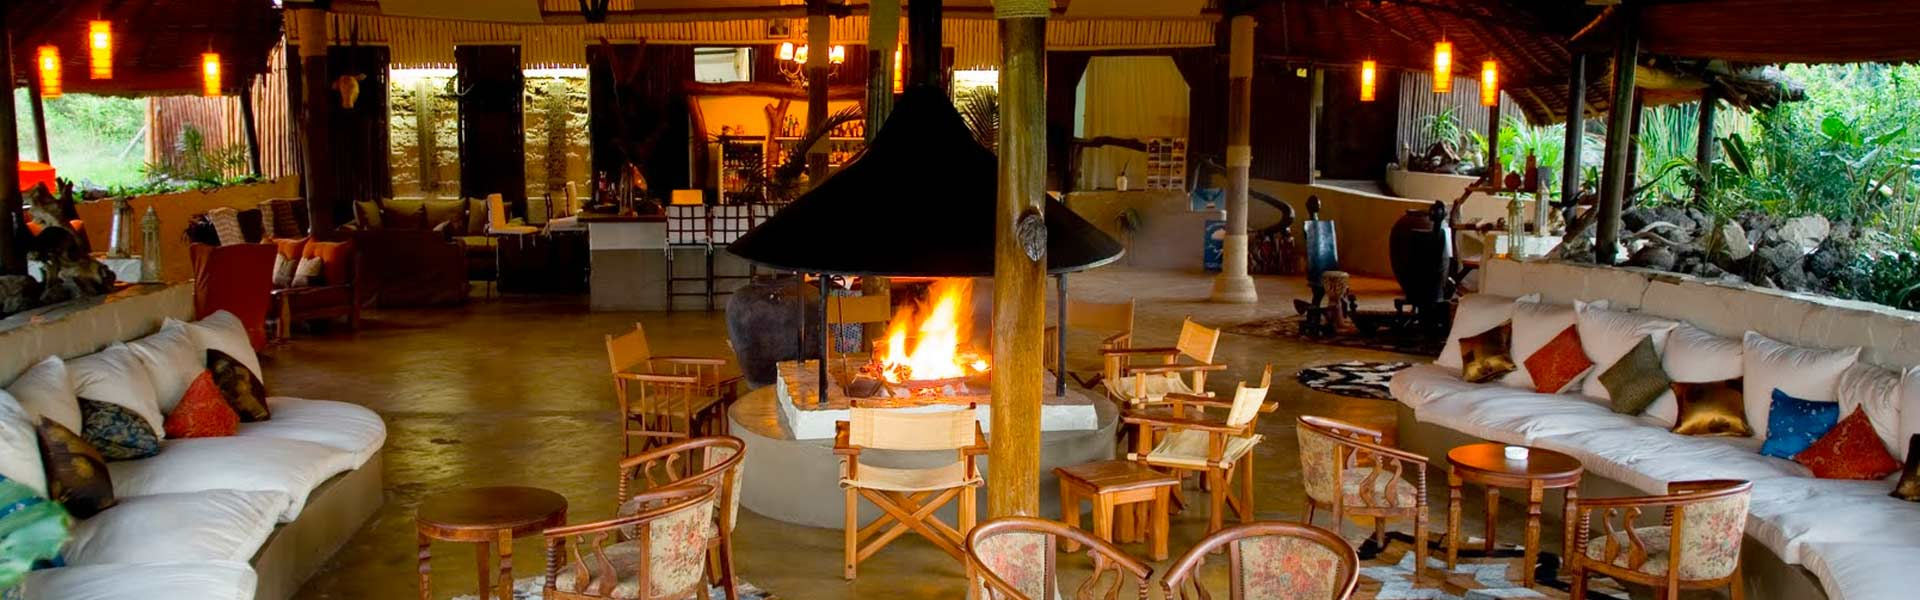 Kenya escapes safari luxury fireplace in boma